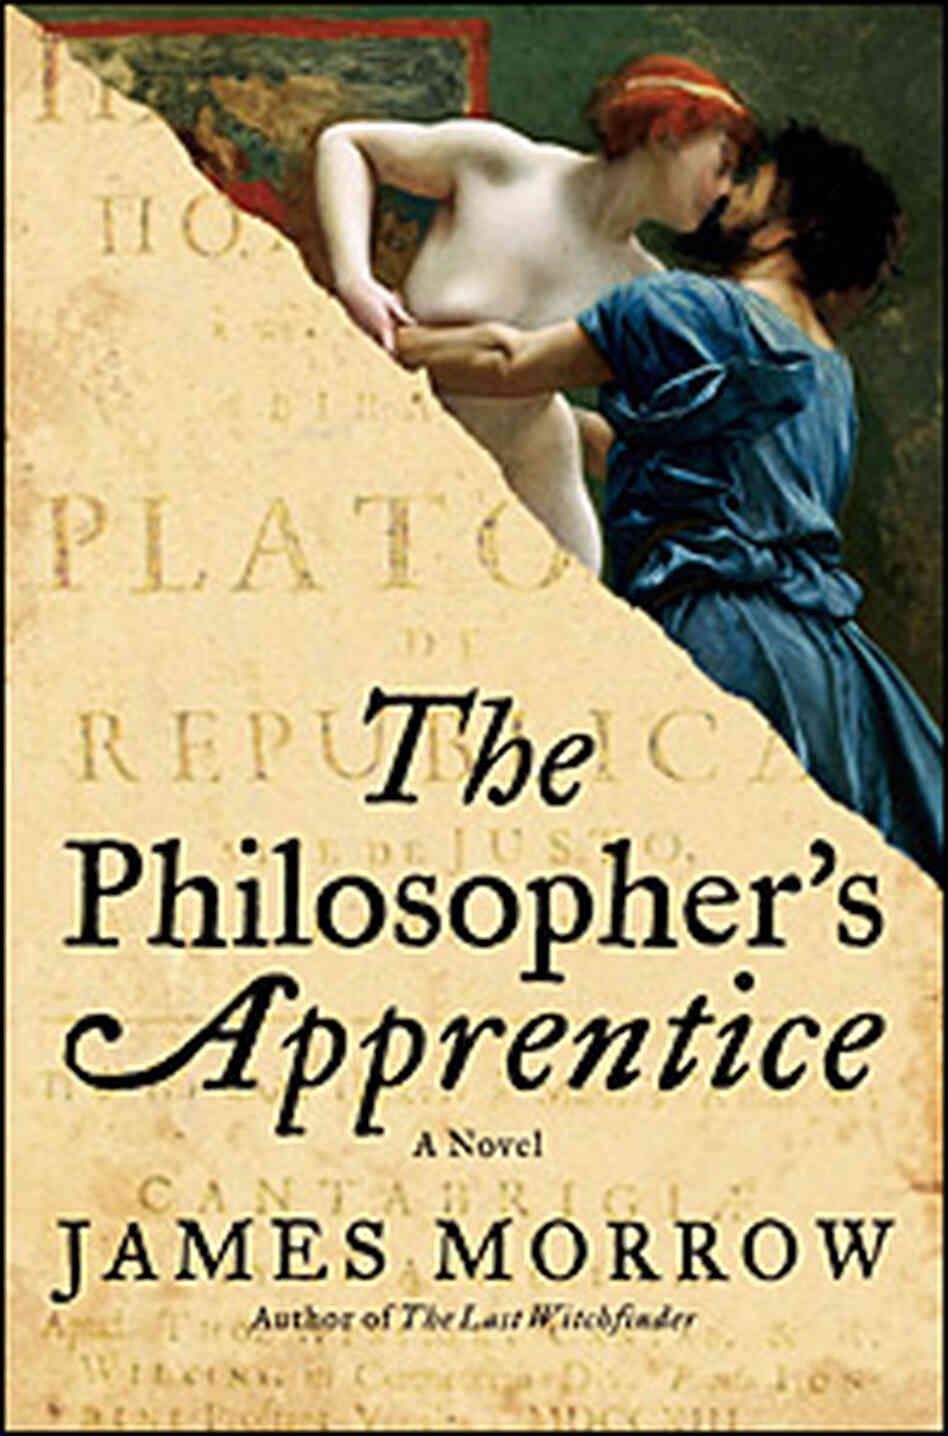 'The Philosopher's Apprentice' cover